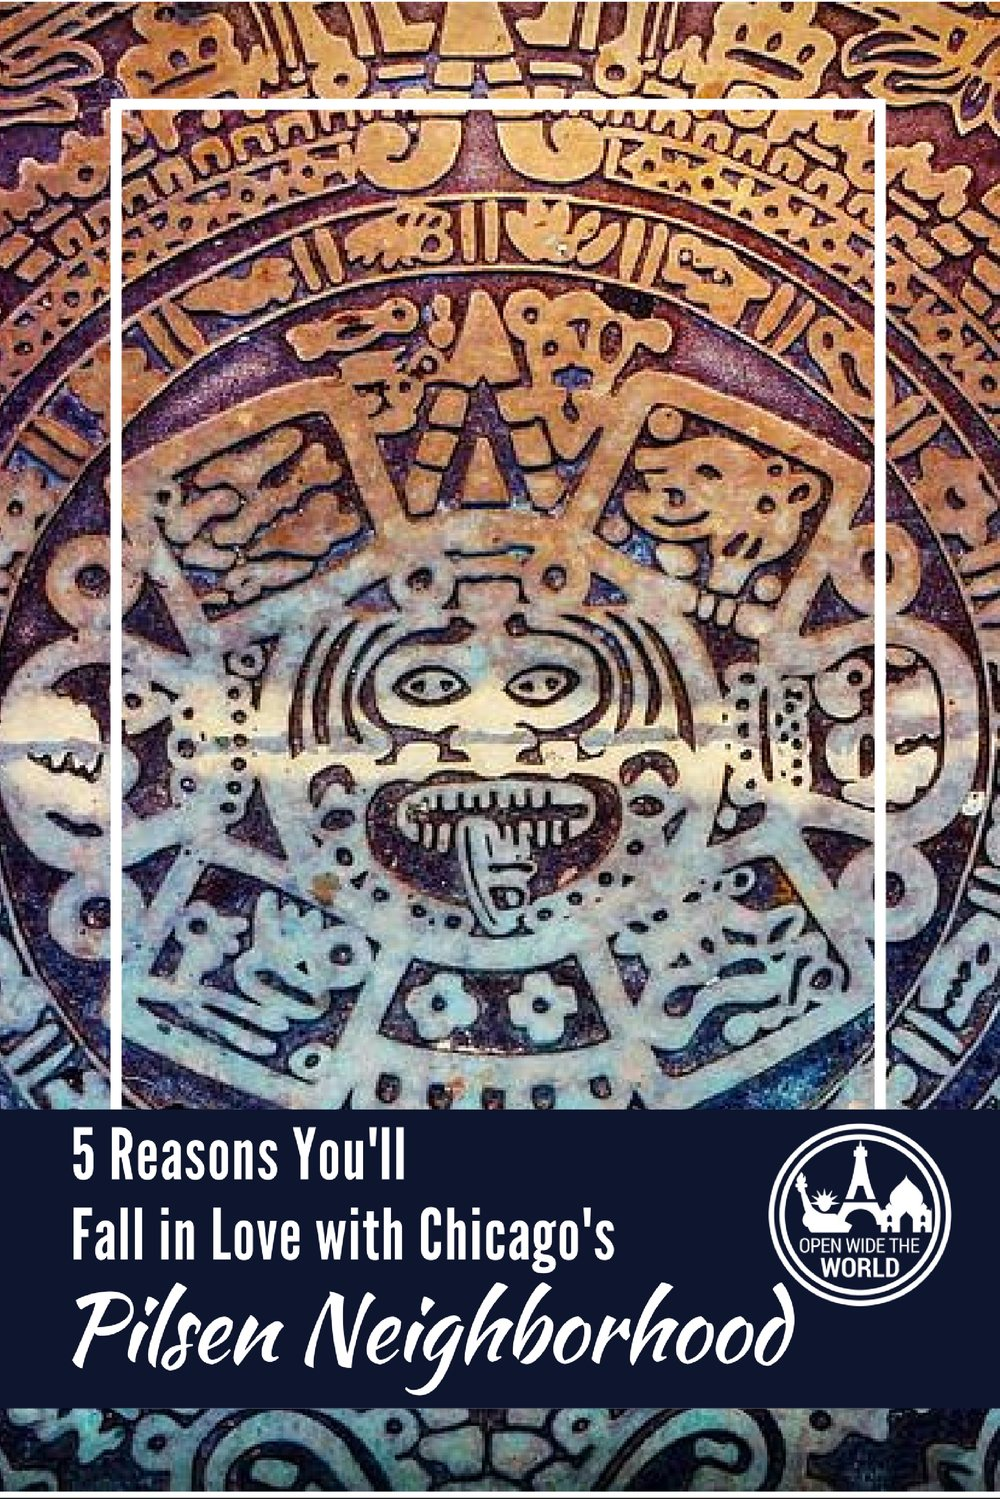 Chicago is famed the world over for its bold architecture, renowned museums, unique hot dog style, its seemingly inverted deep dish pizza, jazz music, and its gangster past. But where Chicago truly comes alive for locals is in its seventy-seven distinct neighborhoods. Check out why city residents love Chicago's Pilsen neighborhood.